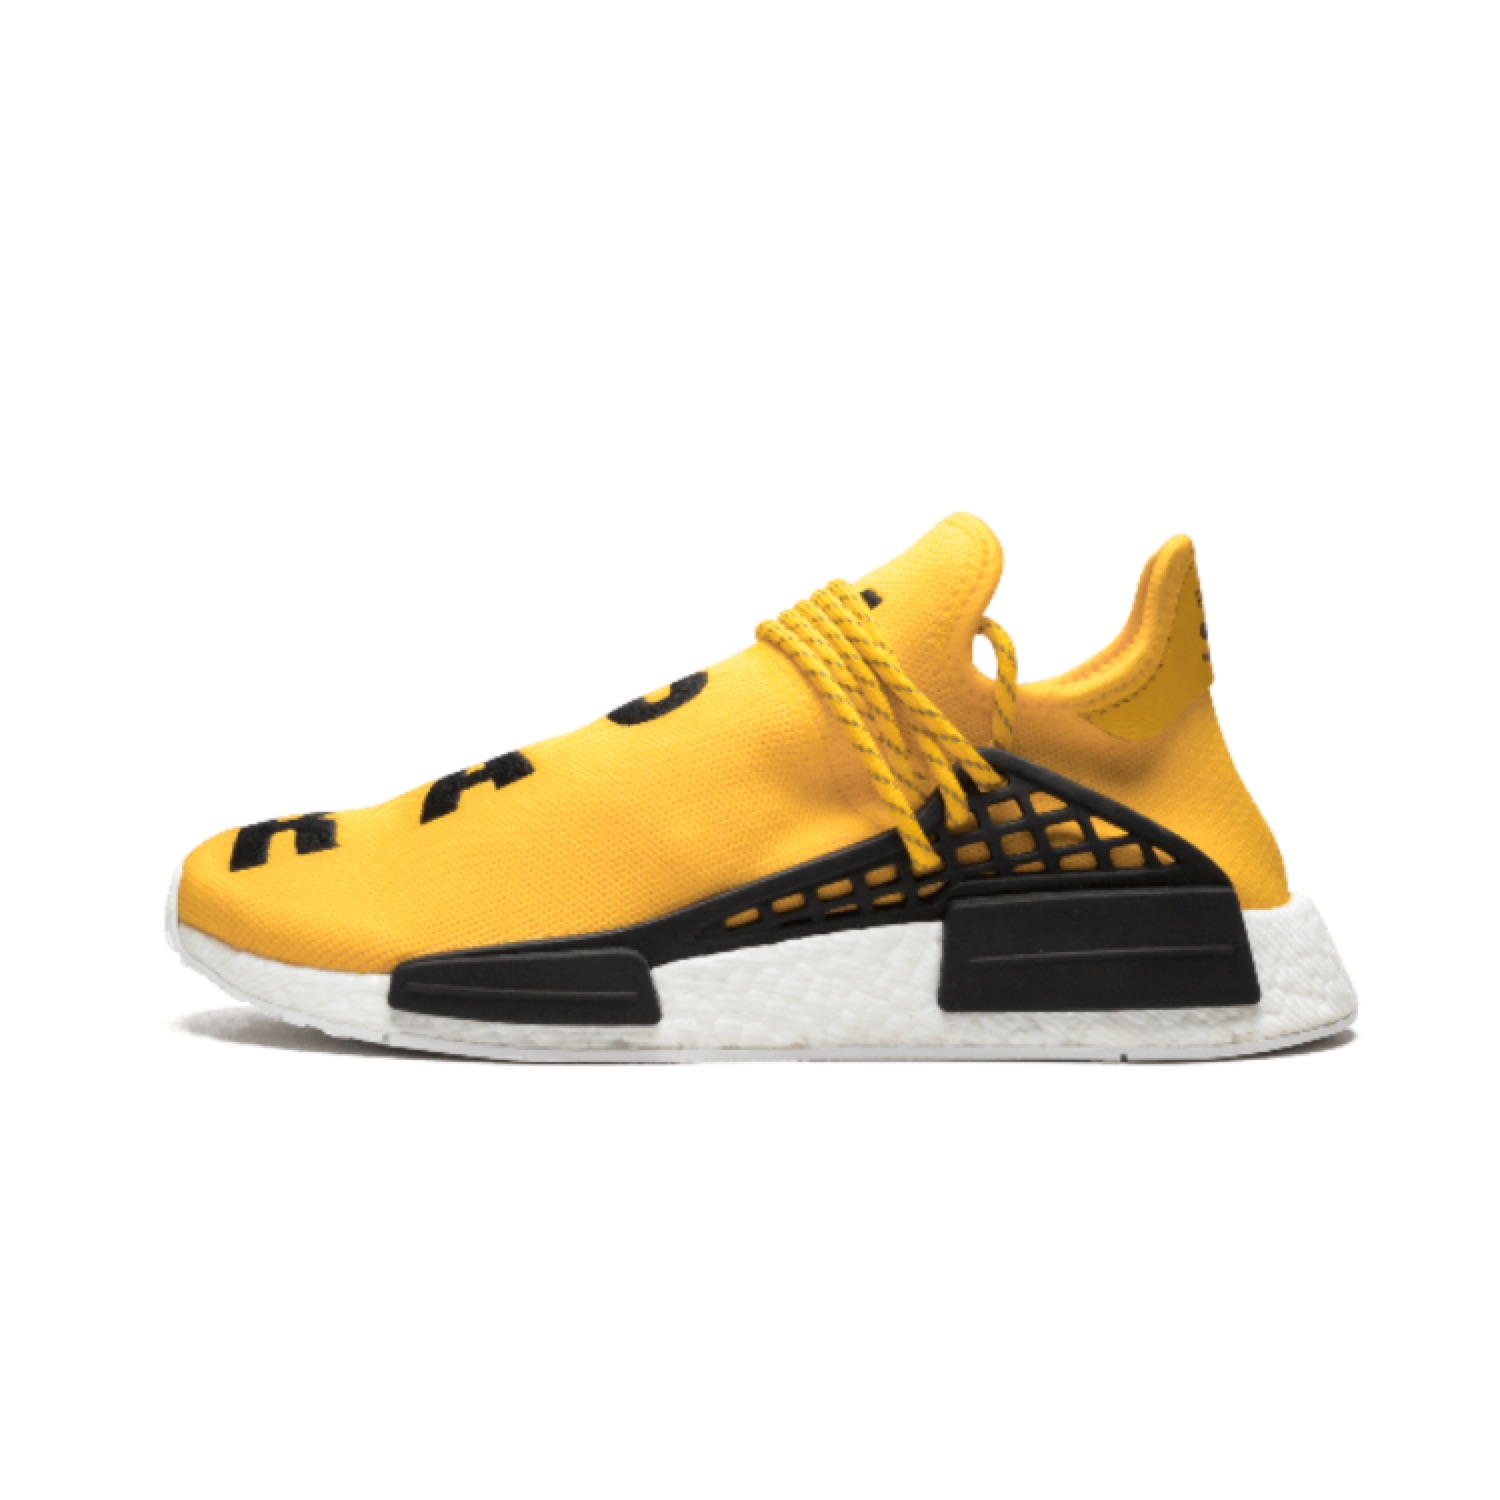 hot sale online 342c2 636ca Adidas Human Race Nmd Og Yellow Sizes 8-12